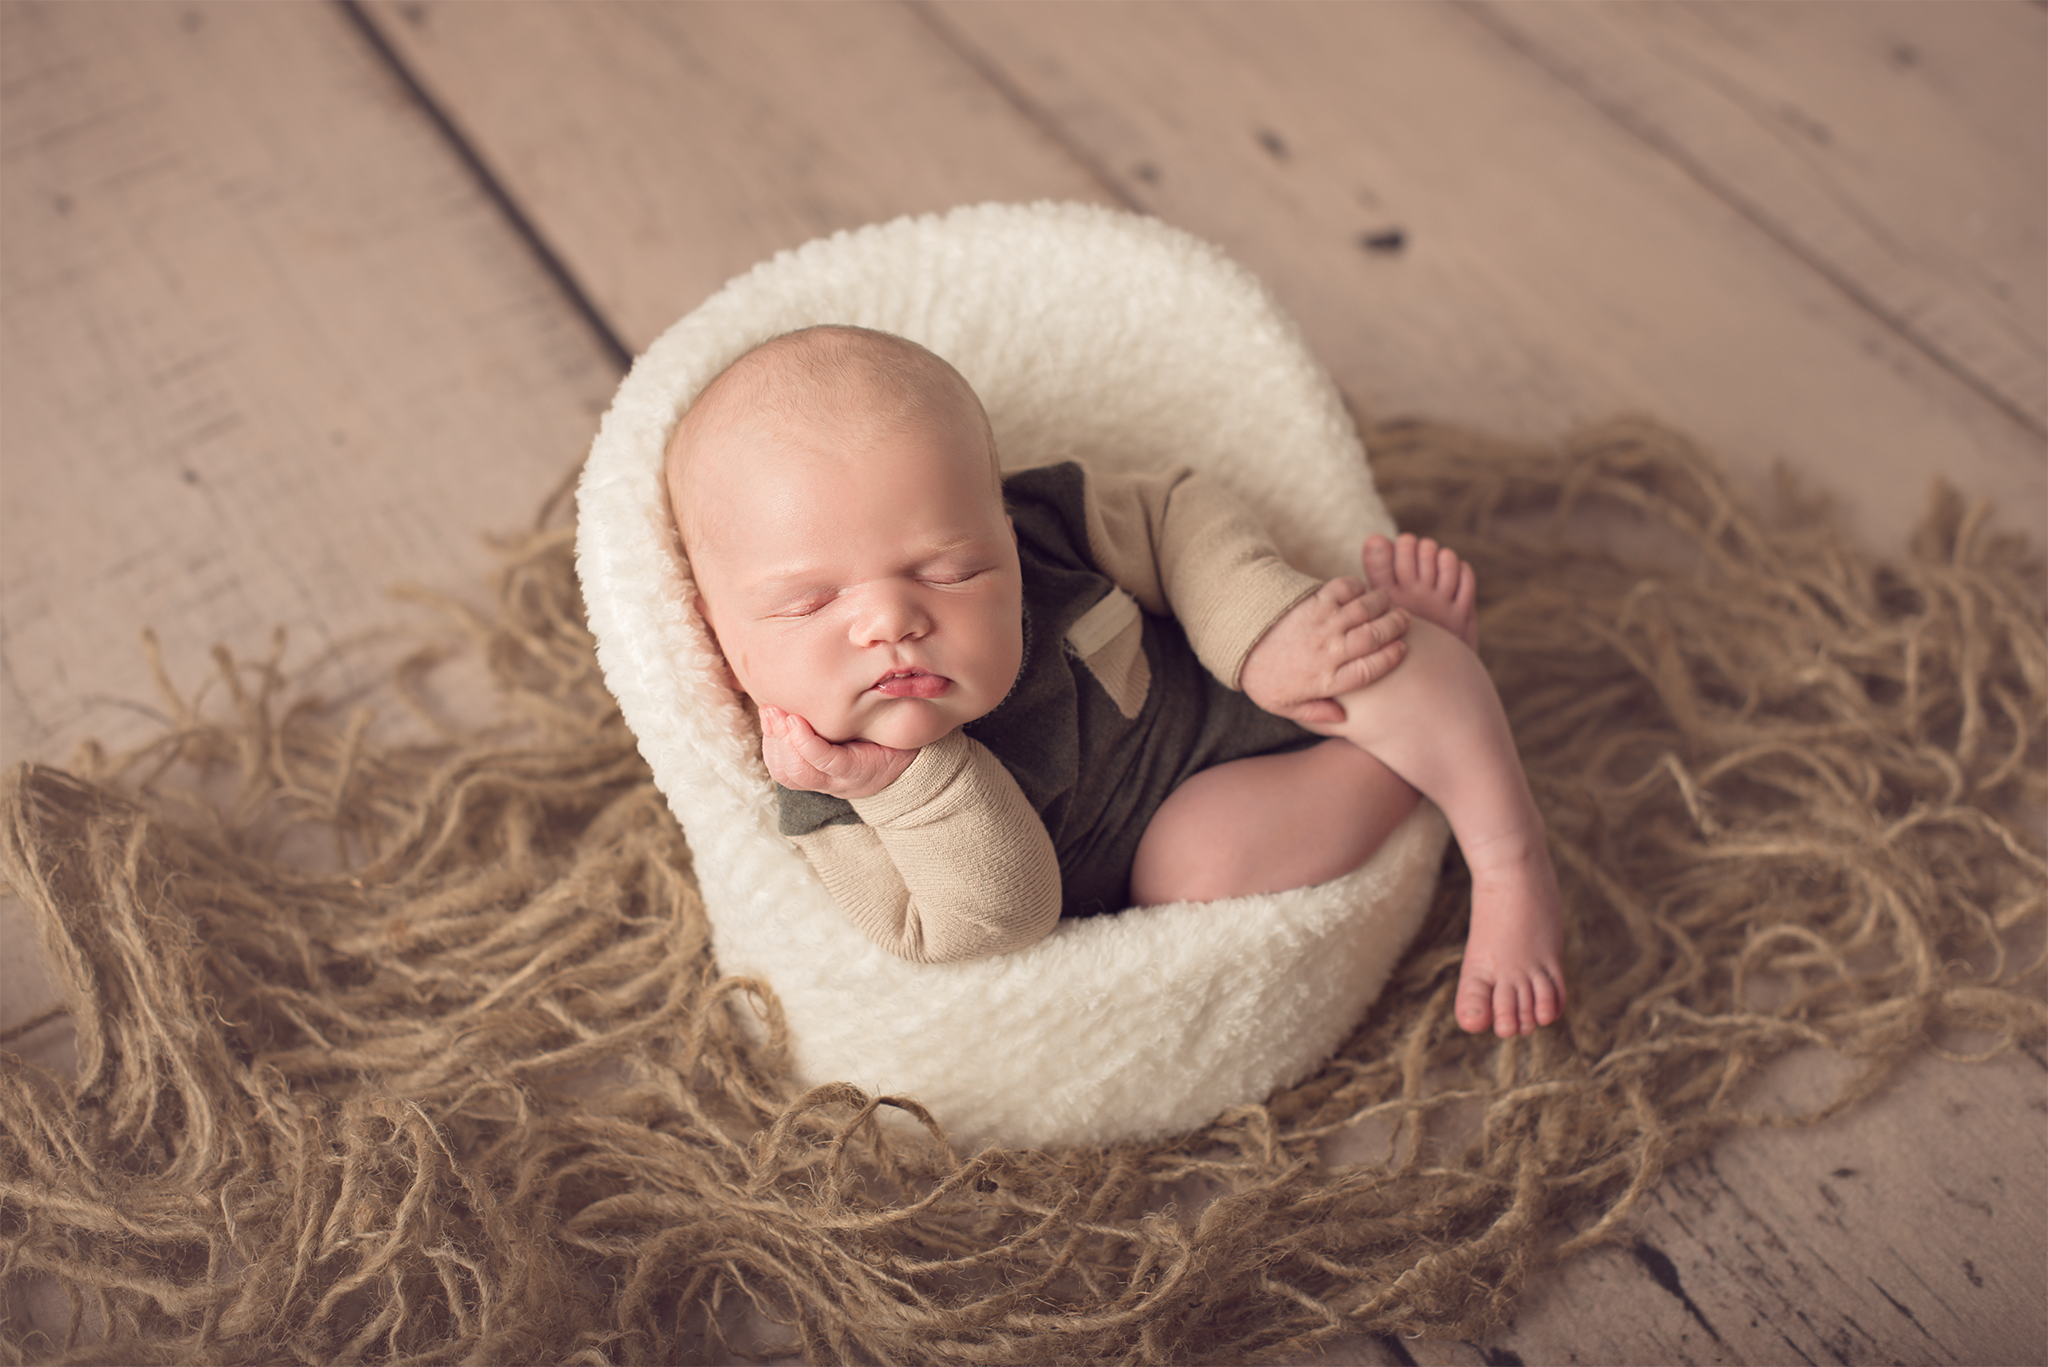 Rhode island newborn photographer kimberly tetrault photography llc